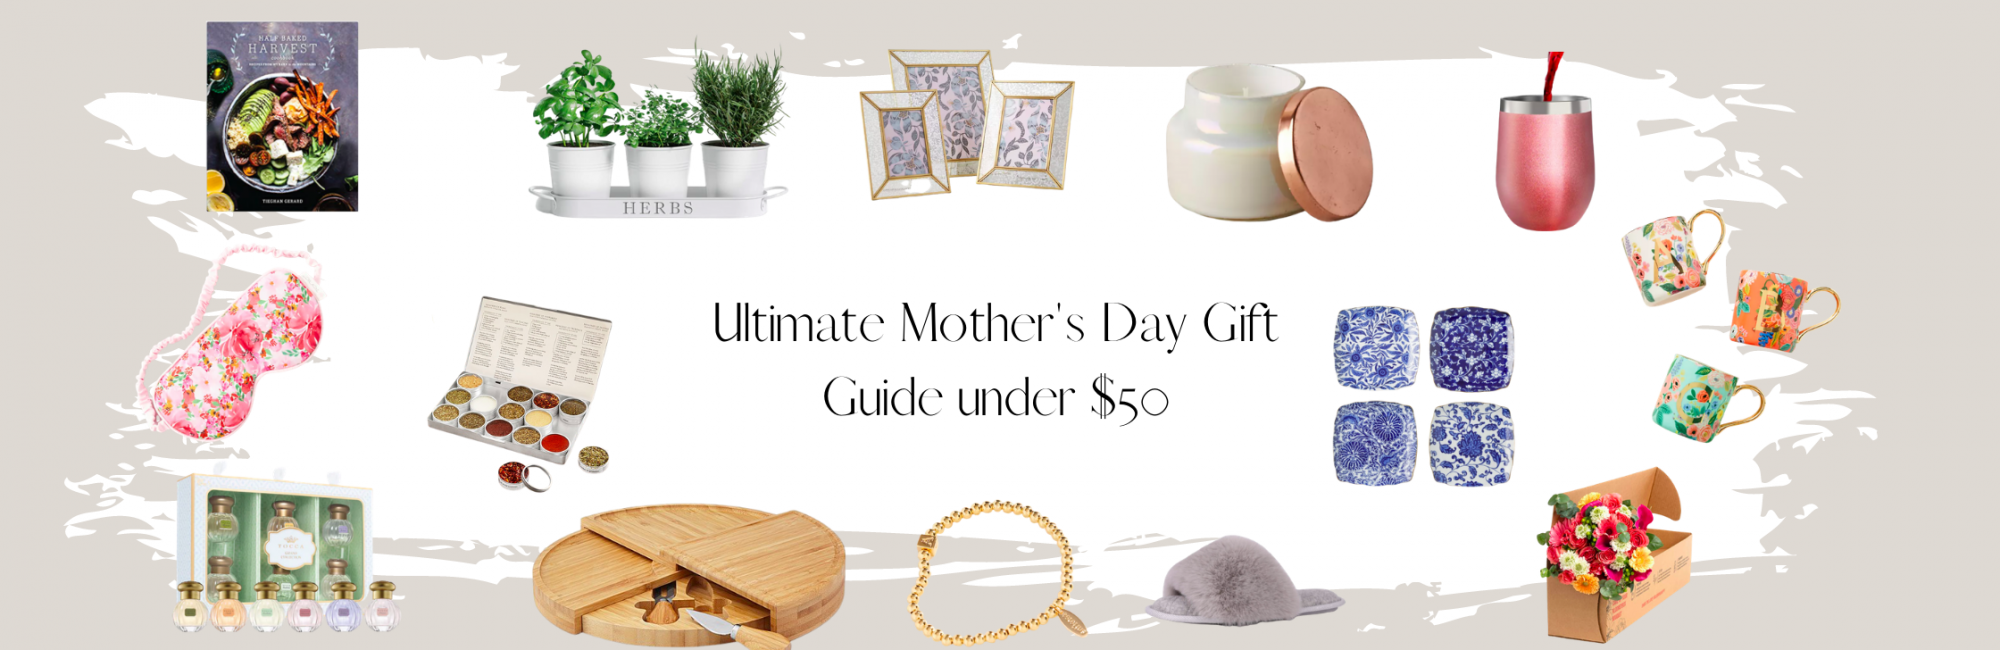 Ultimate Mother's Day Gift Guide Under $50